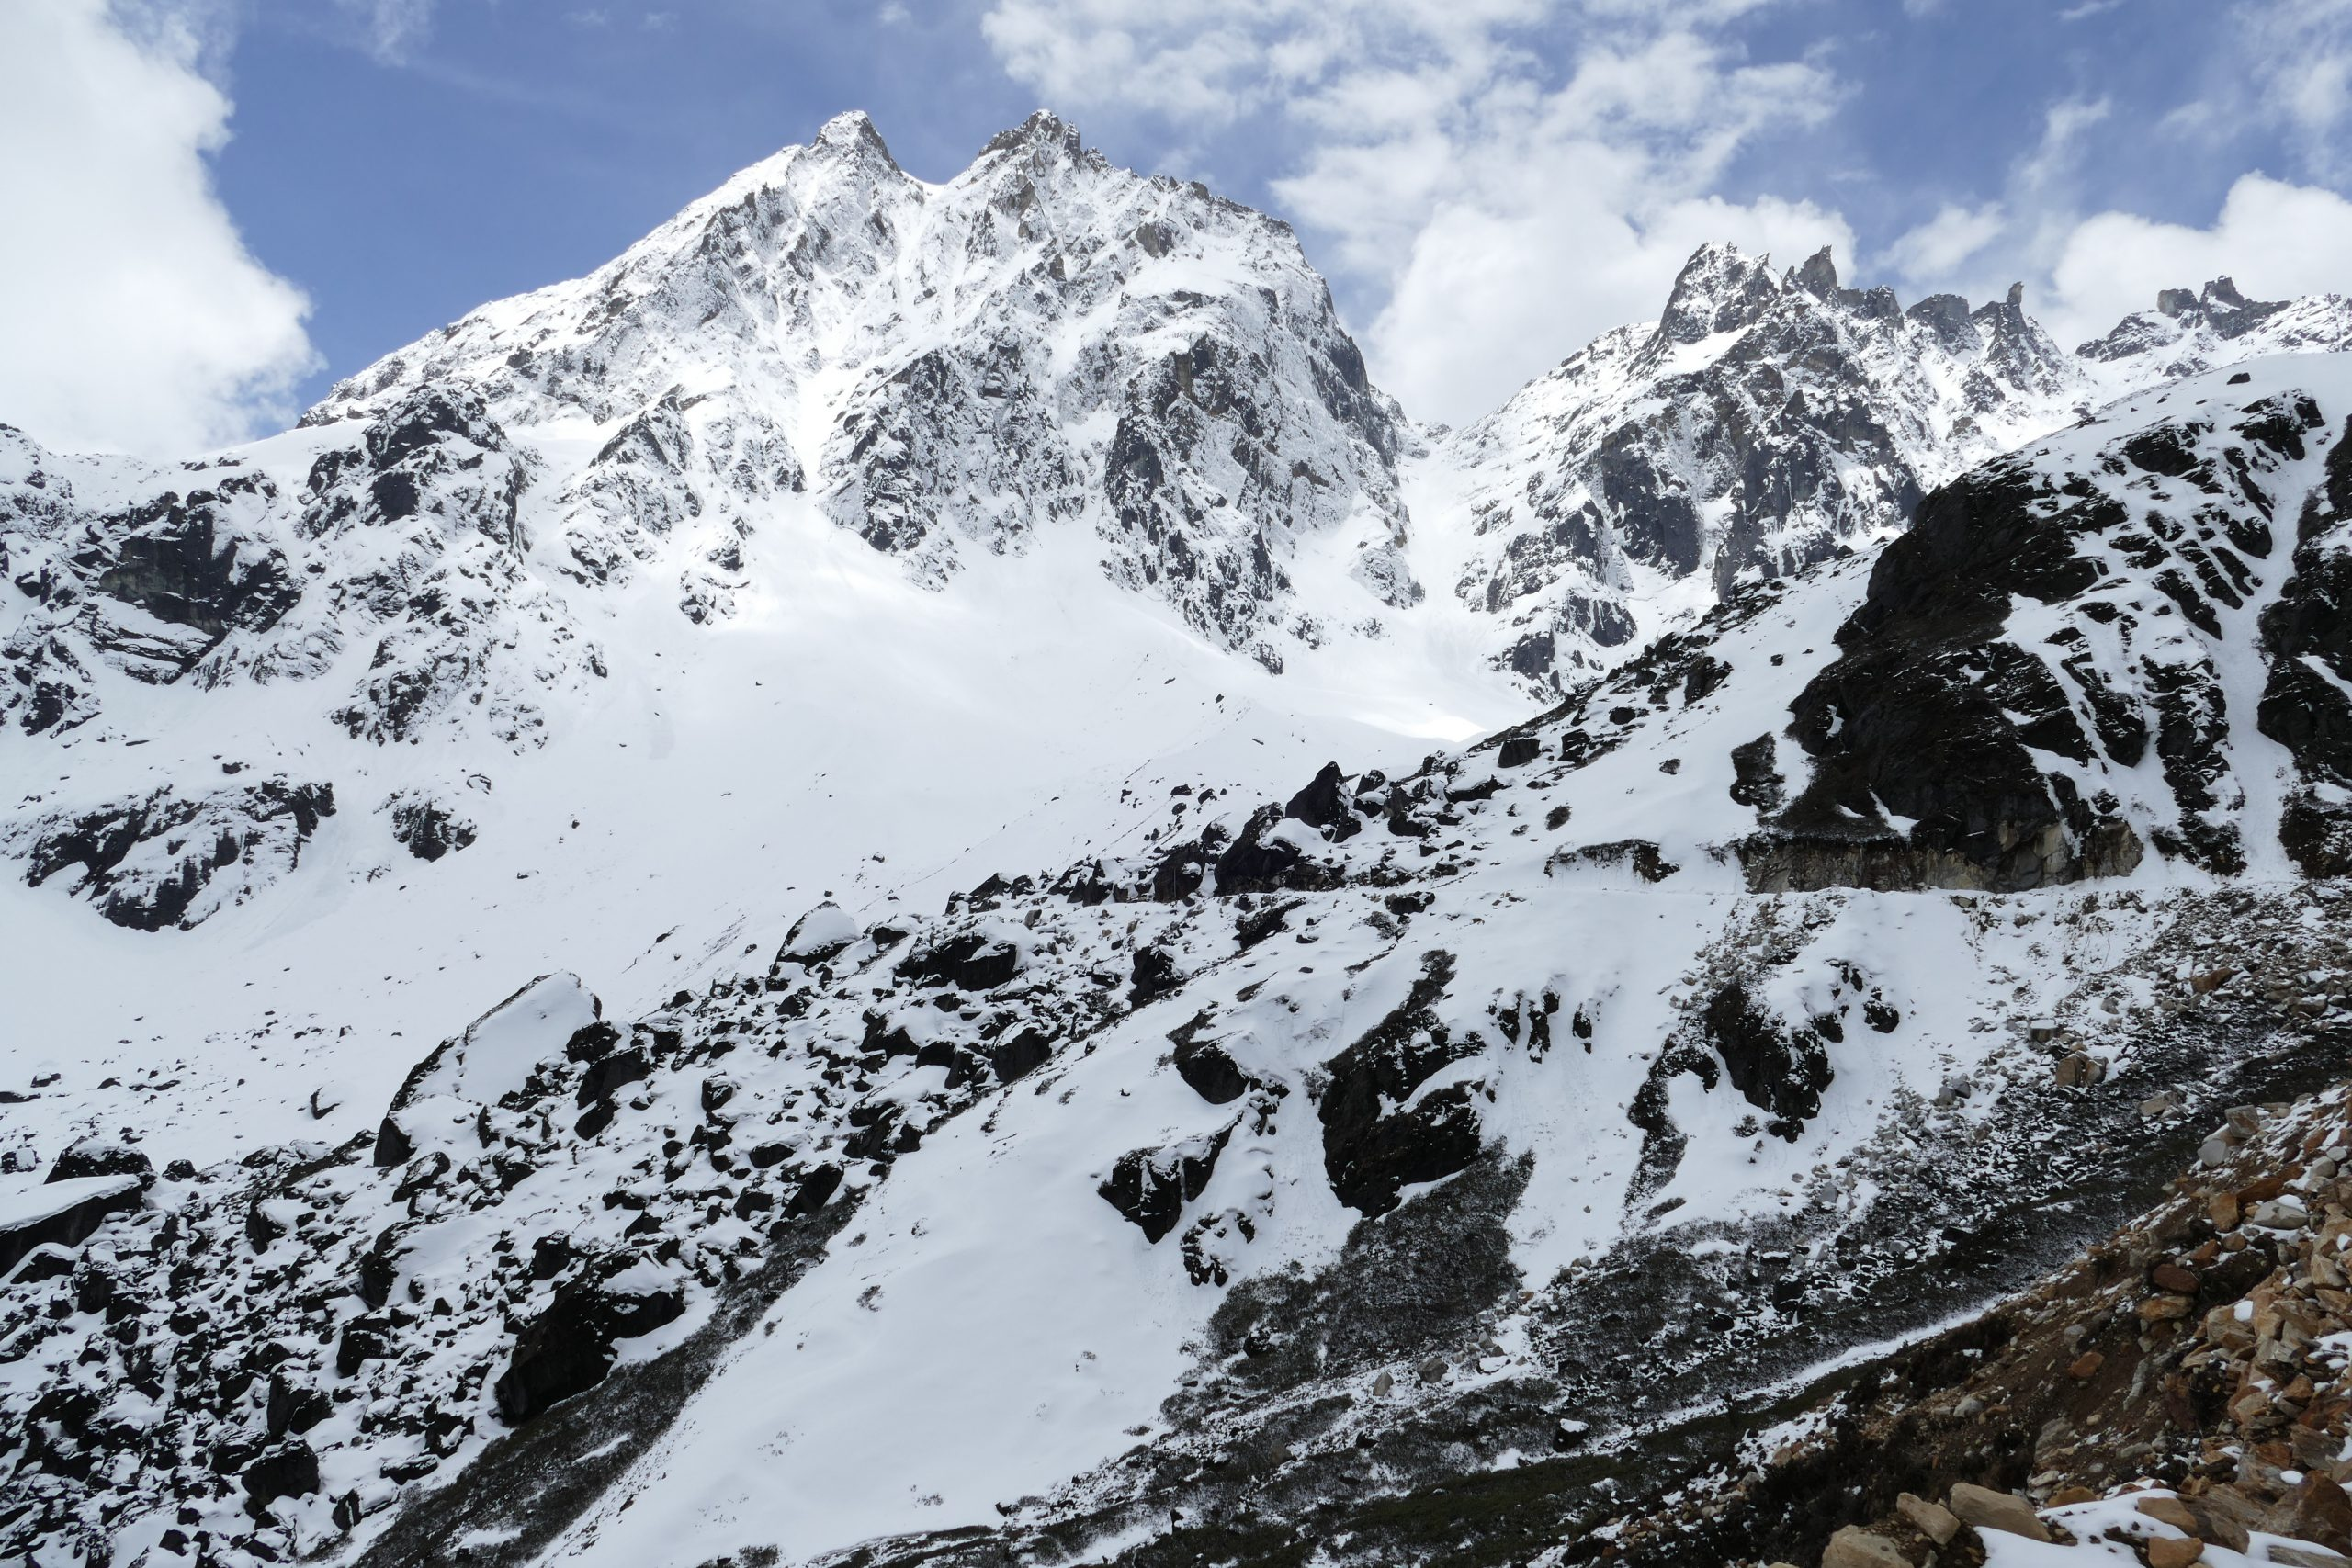 Chopta Most Popular Place To Visit In Uttarakhand